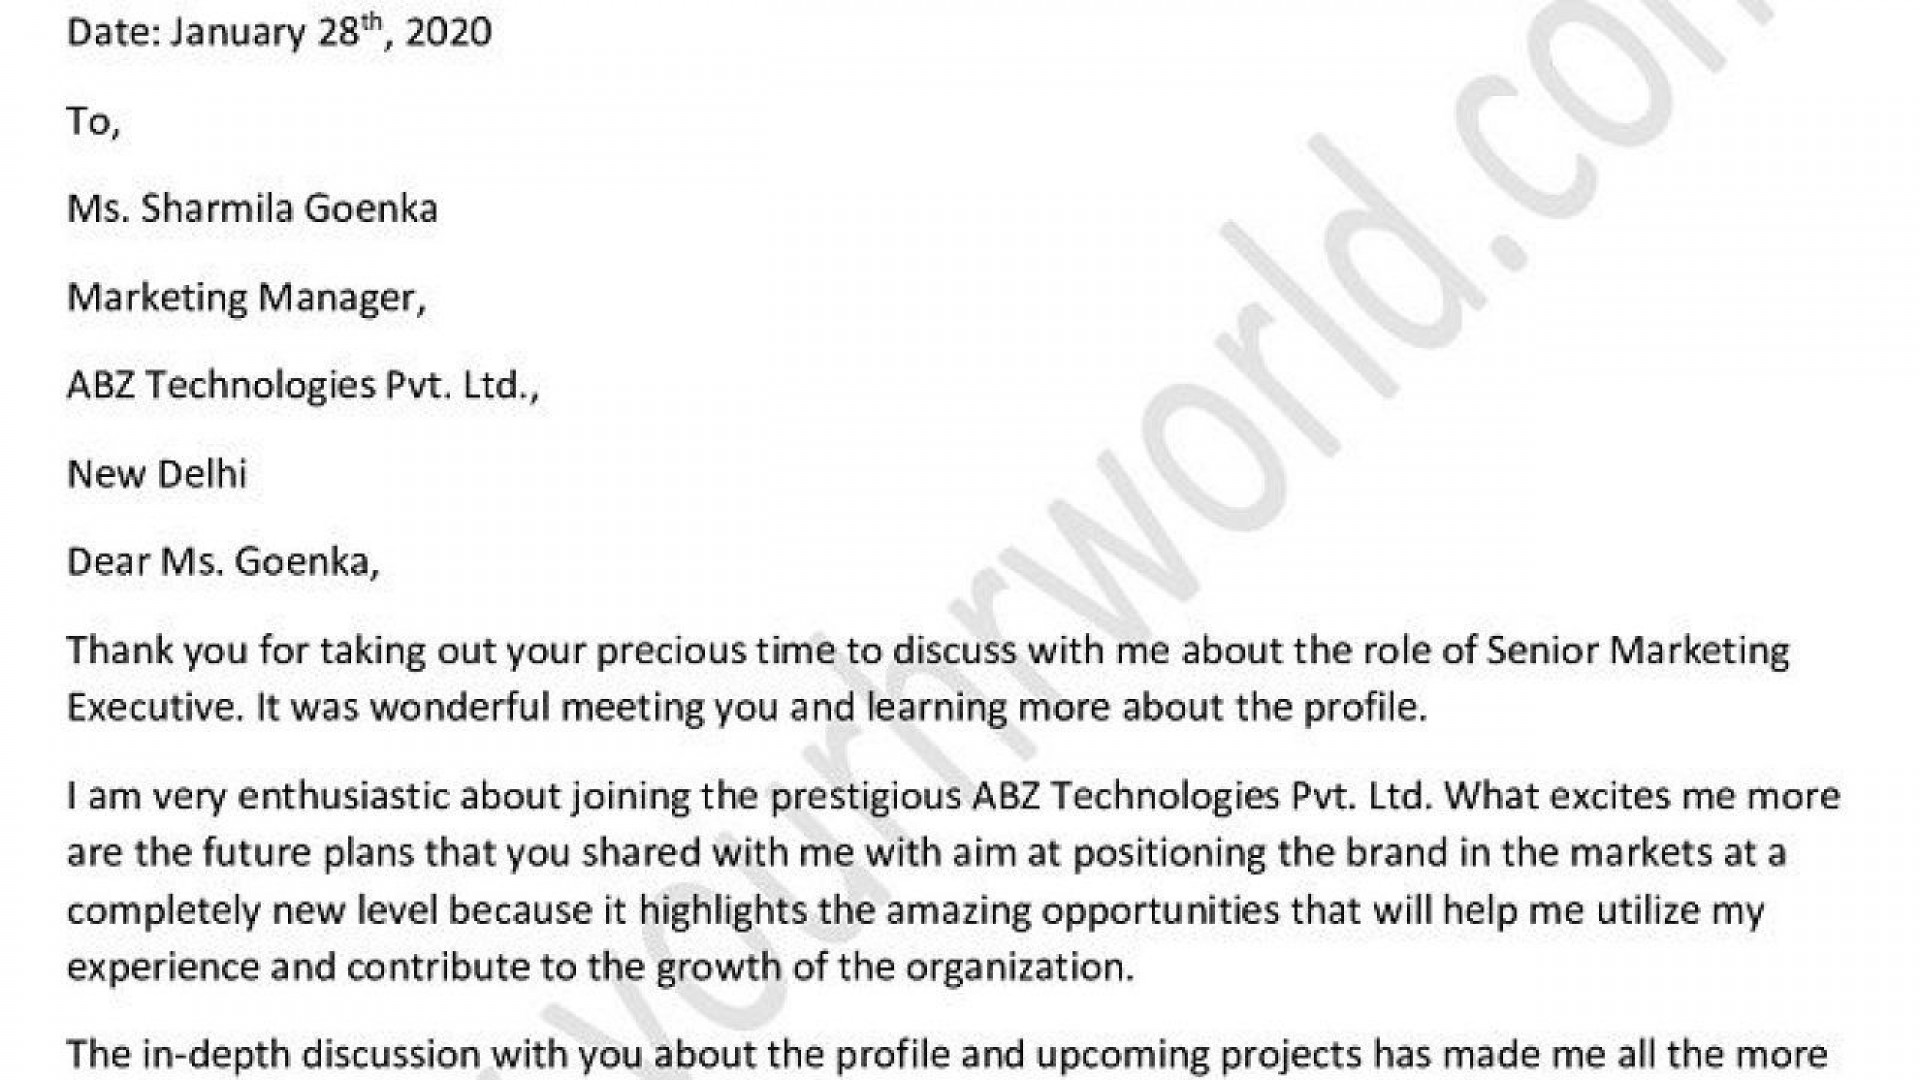 002 Formidable Follow Up Email Sample After Interview Highest Quality  Polite When You Haven't Heard Back1920